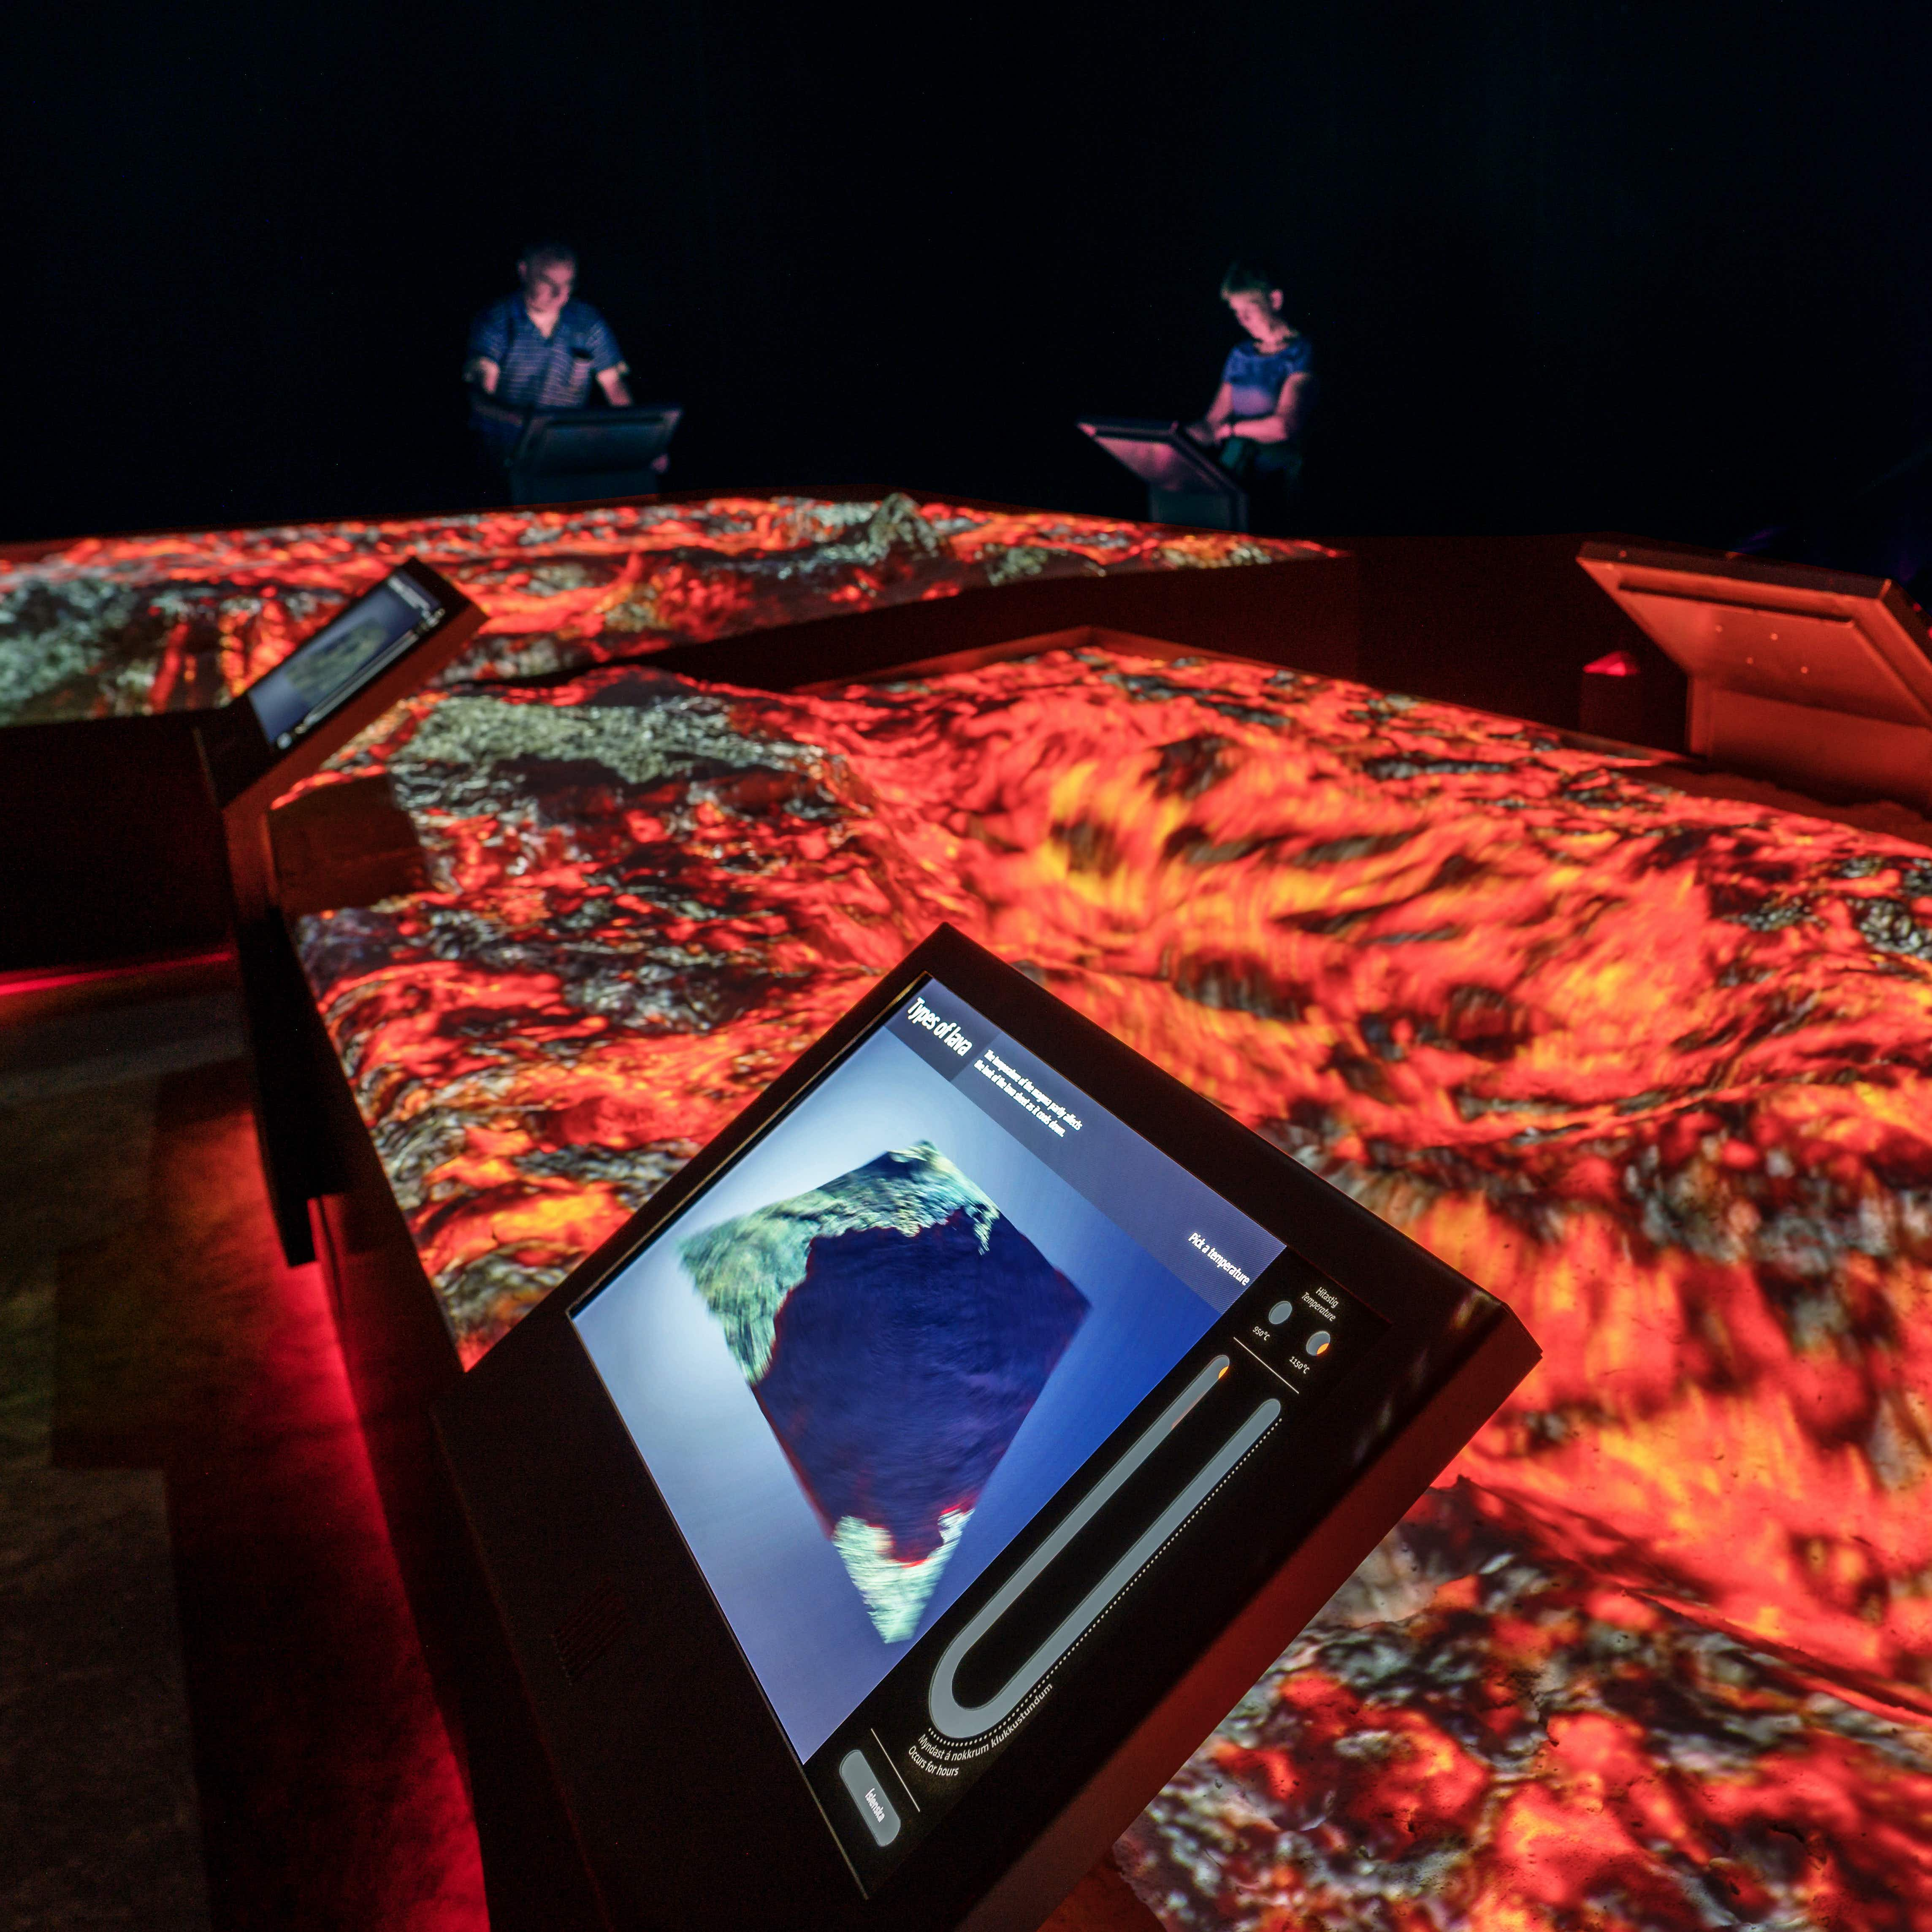 Get this real life experience of earthquakes and volcanoes at Iceland's new Lava Centre